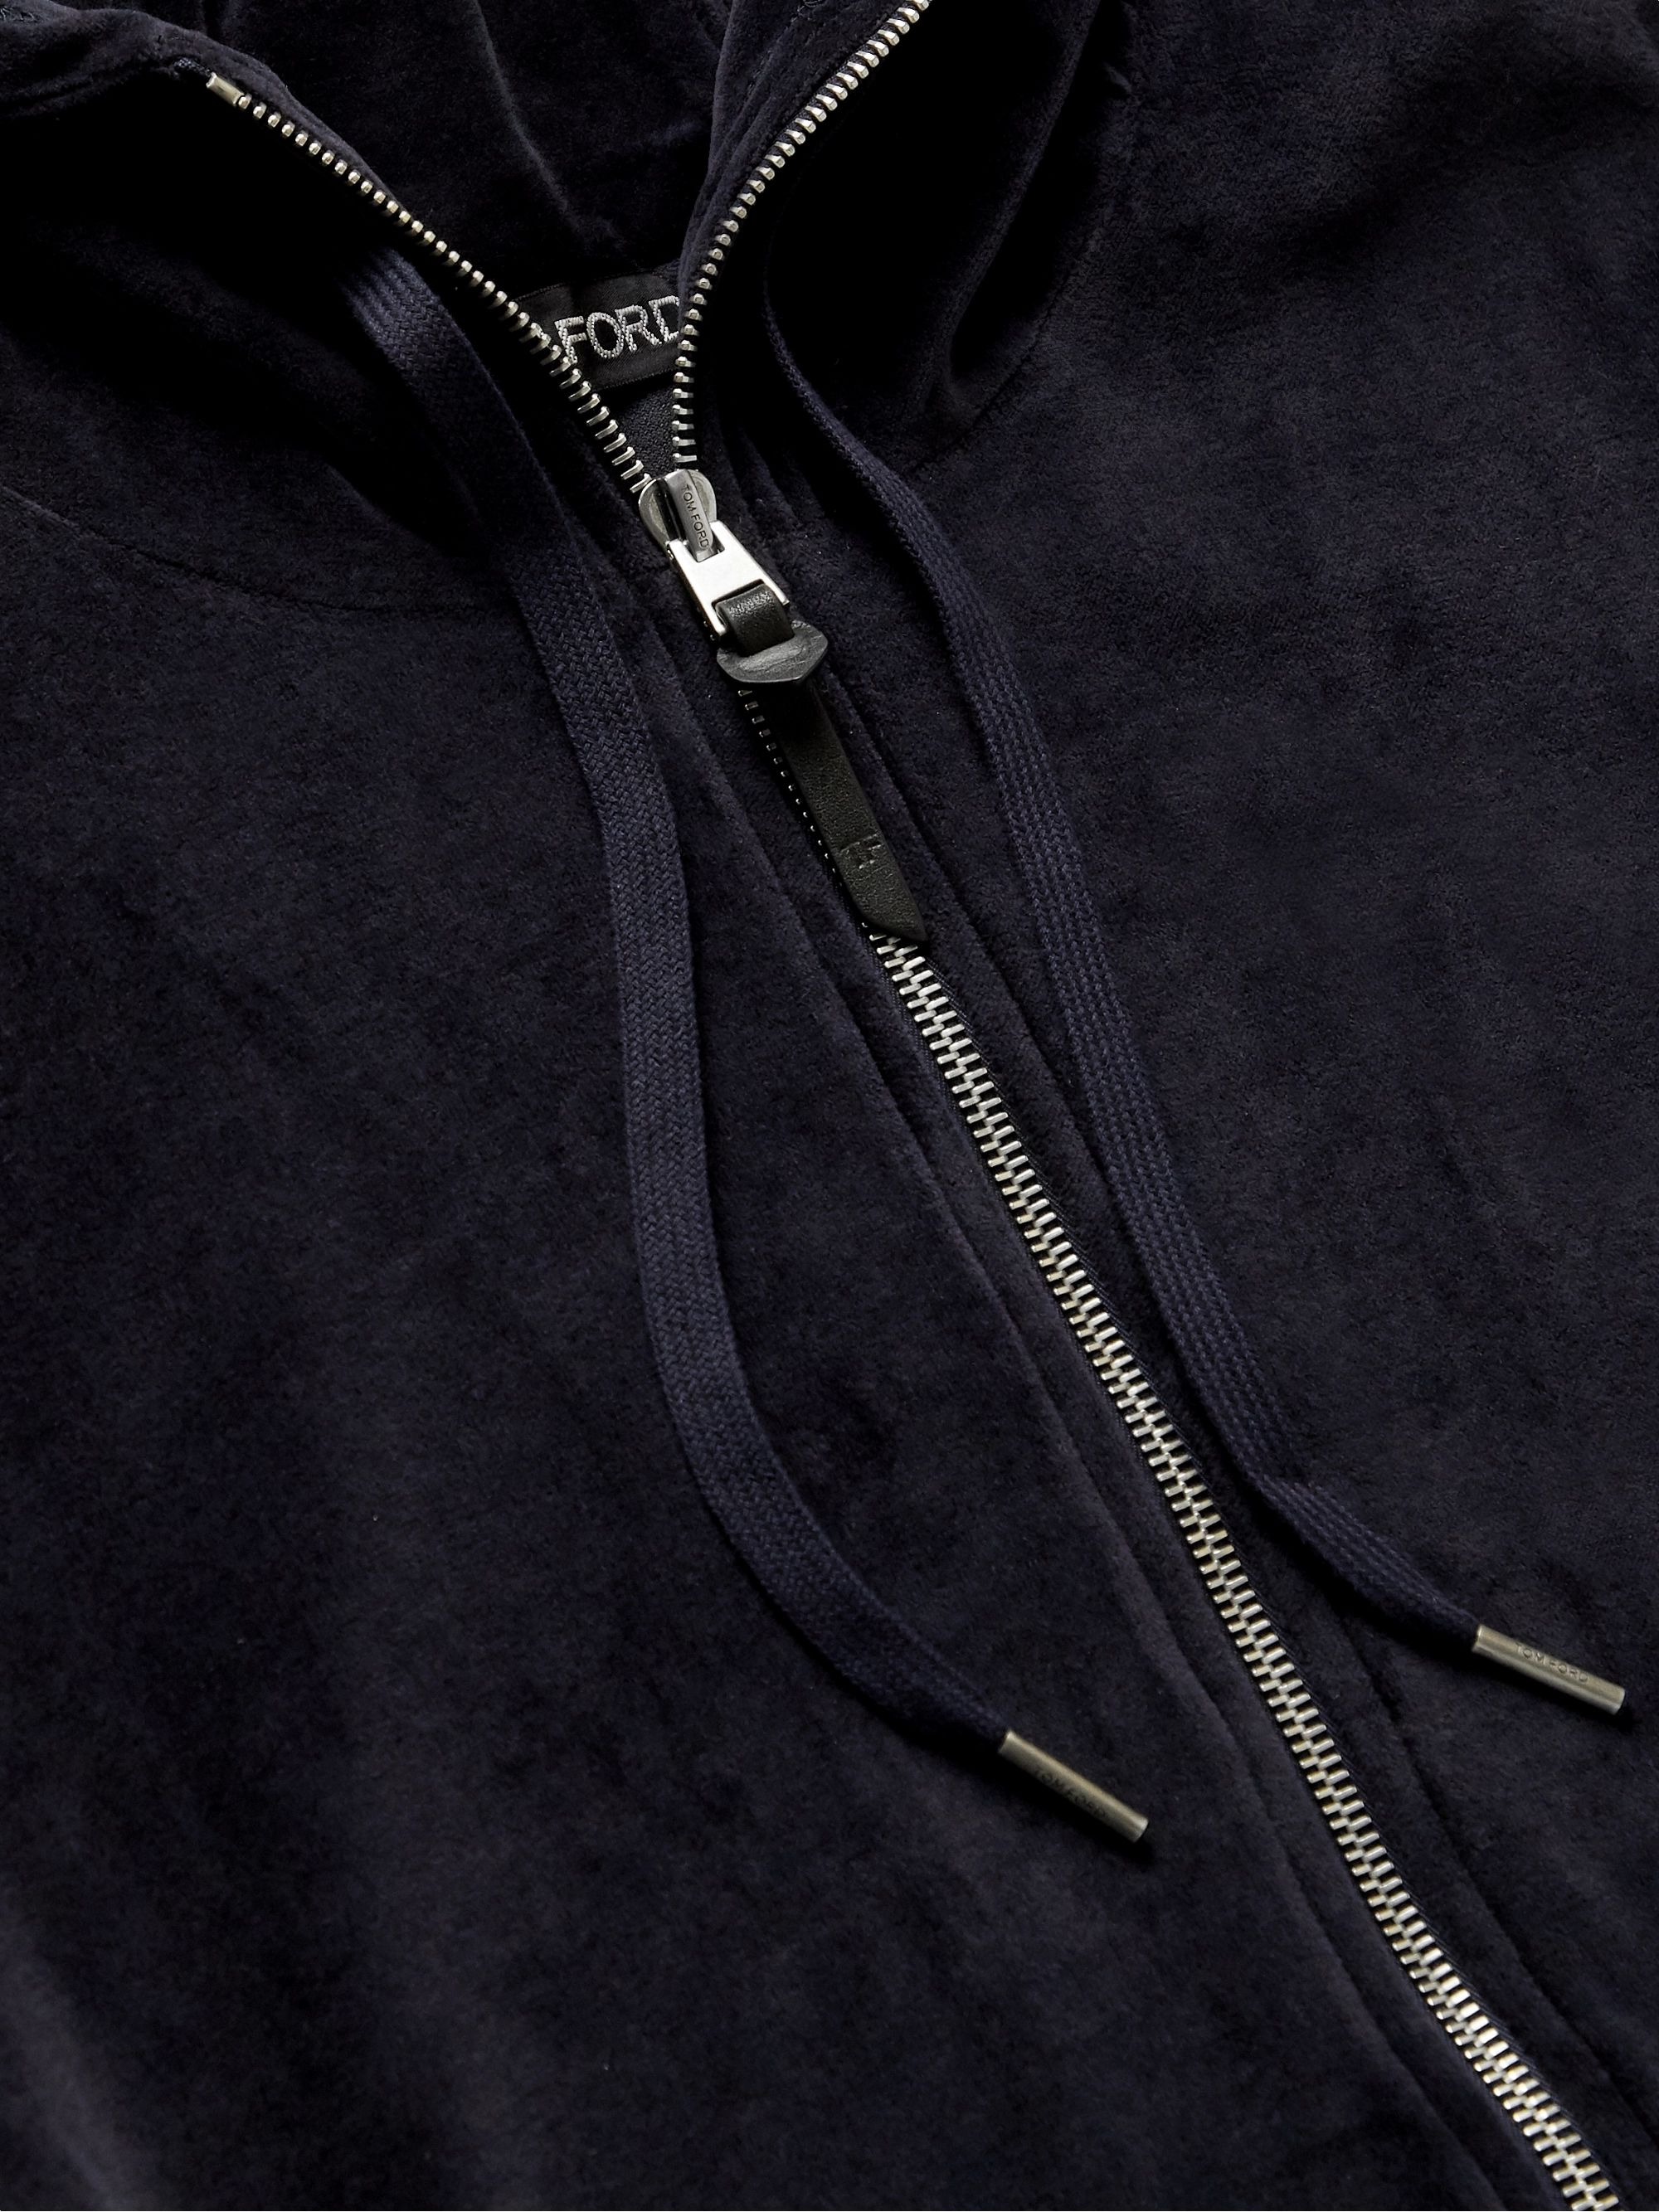 TOM FORD Cotton-Blend Velvet Zip-Up Hoodie